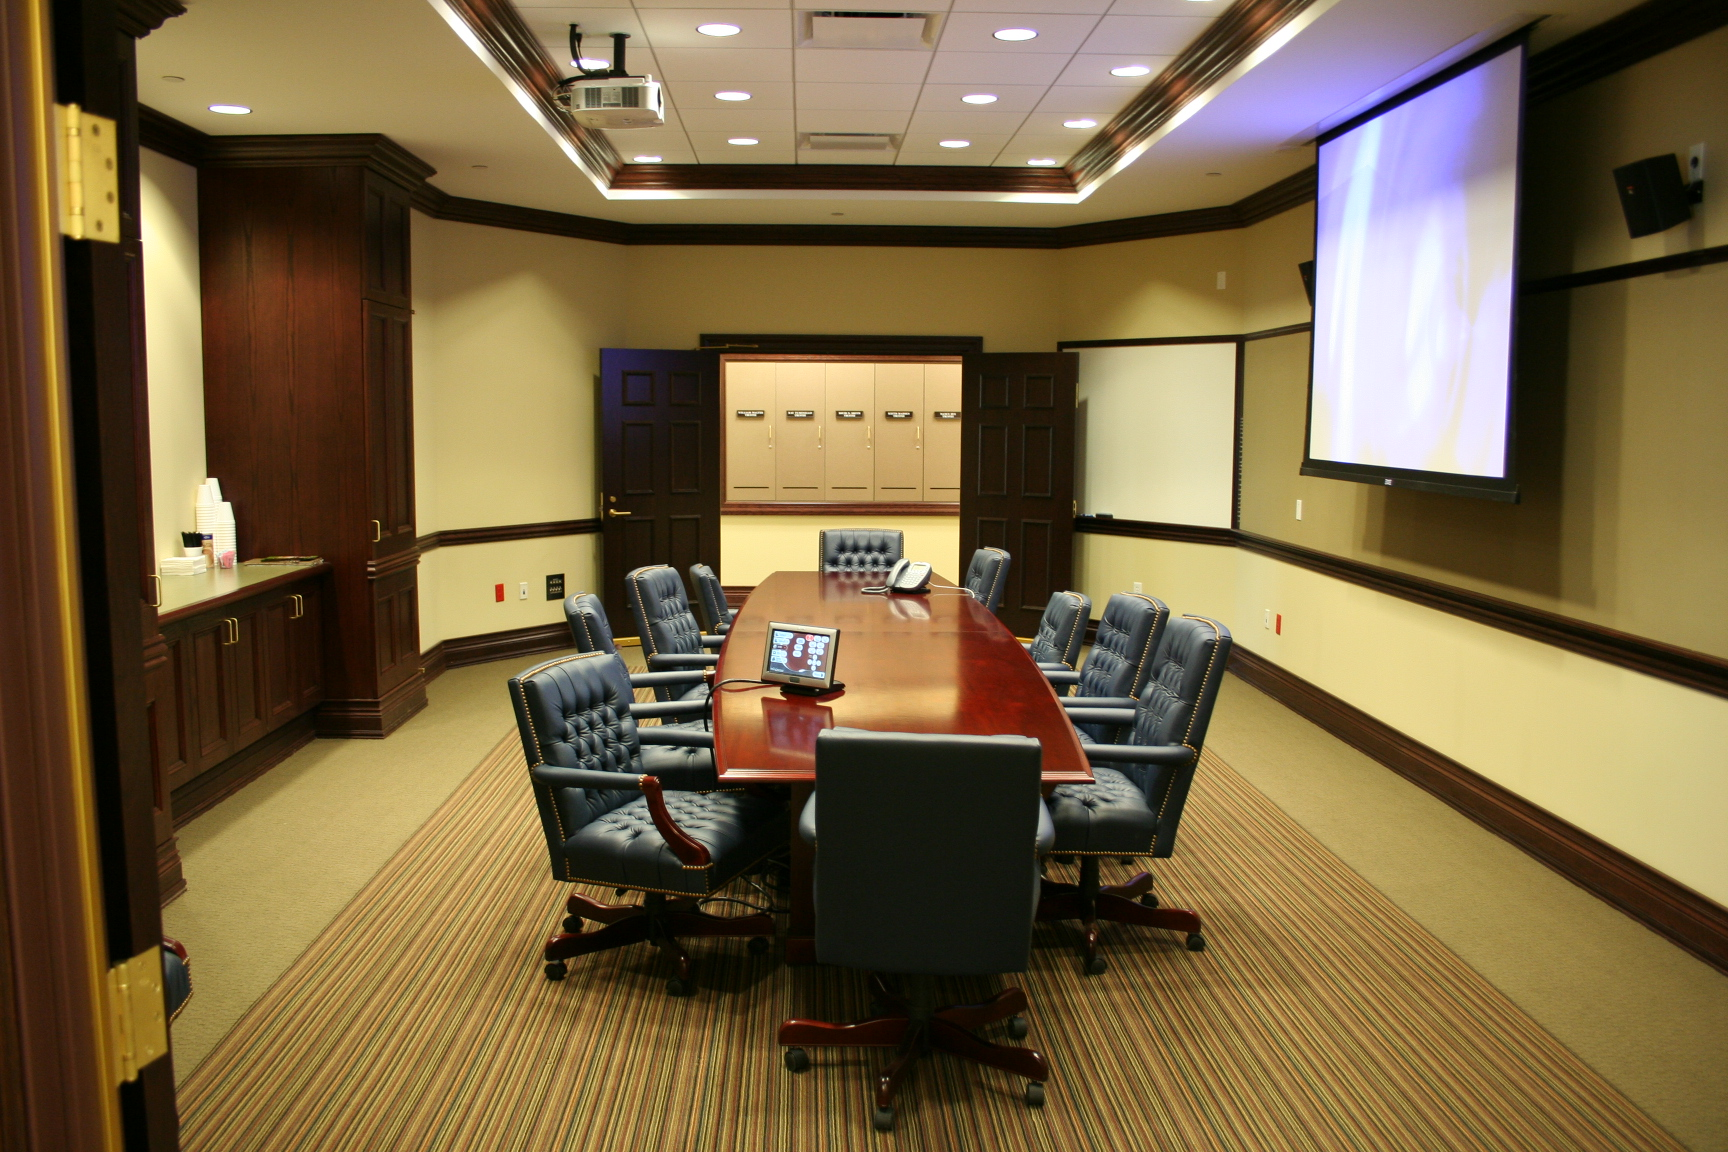 meeting room of the - photo #22